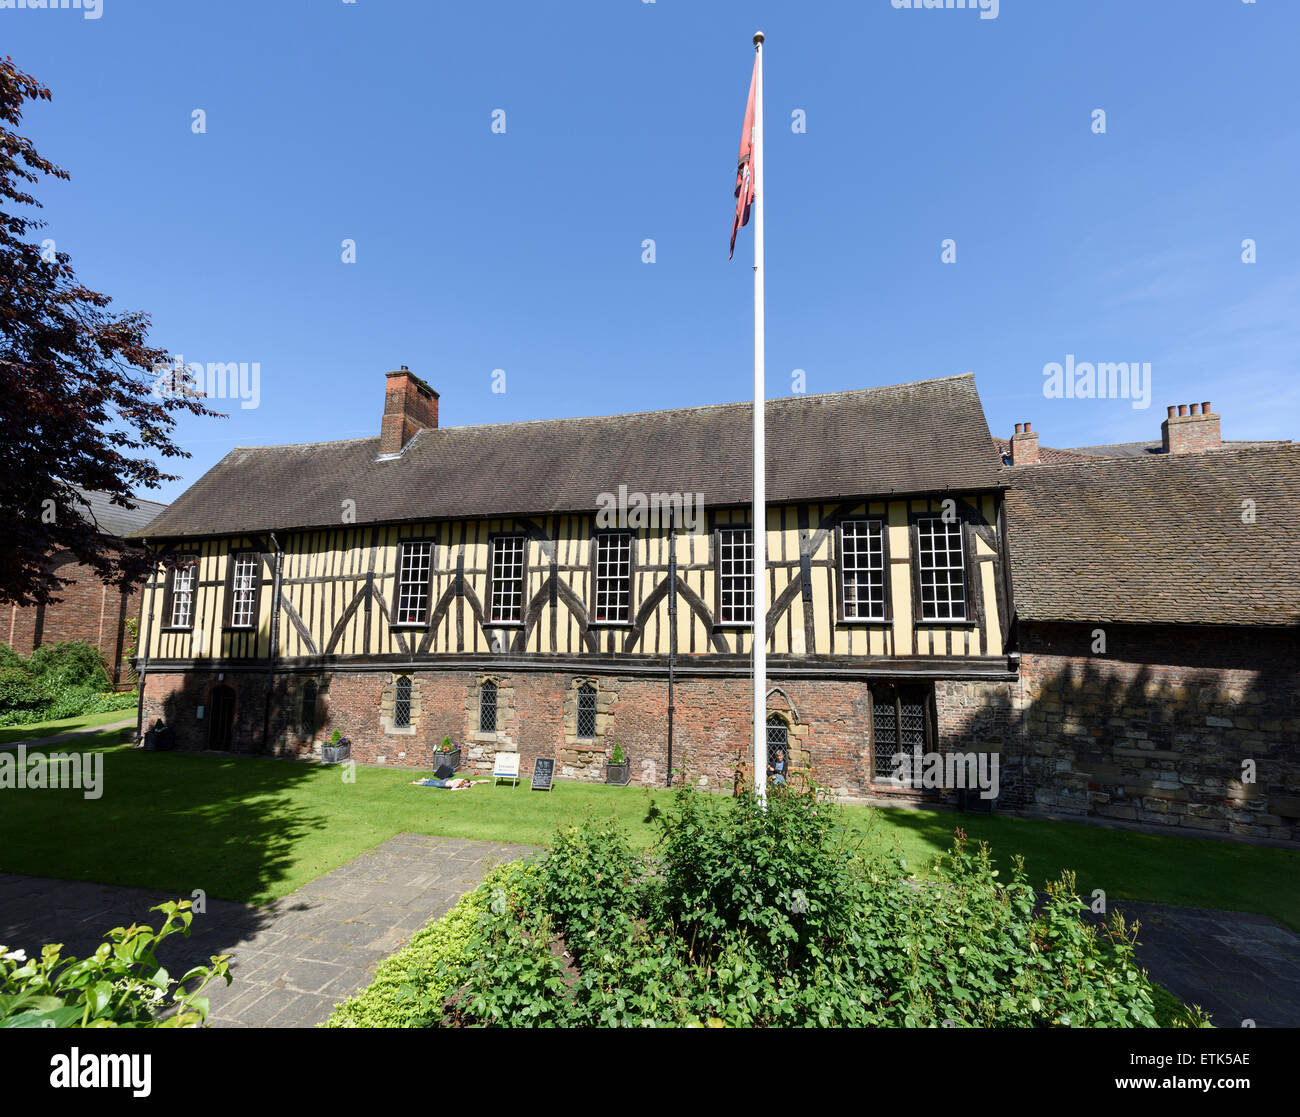 Merchant Adventurers' Hall, Fossgate, York - Stock Image